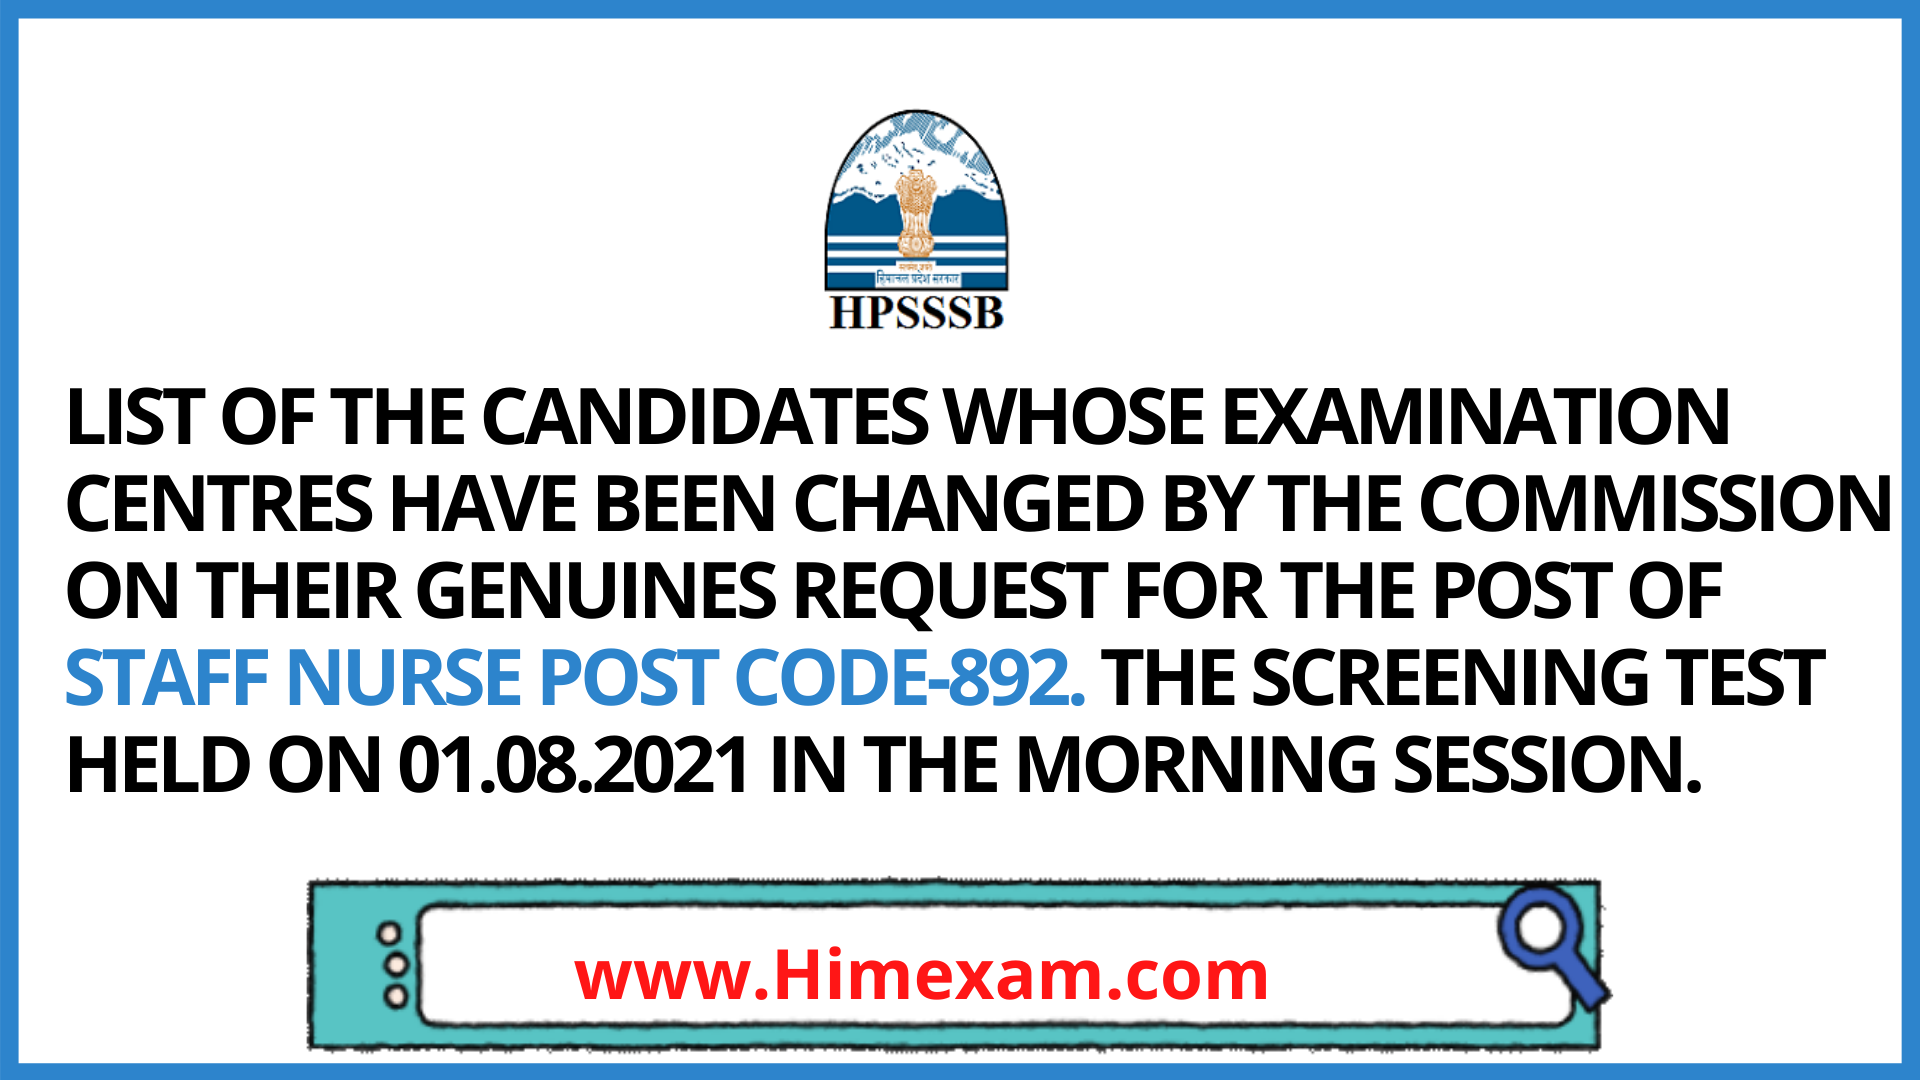 LIST OF THE CANDIDATES WHOSE EXAMINATION CENTRES HAVE BEEN CHANGED BY THE COMMISSION ON THEIR GENUINES REQUEST FOR THE POST OF STAFF NURSE POST CODE-892. THE SCREENING TEST HELD ON 01.08.2021 IN THE MORNING SESSION.